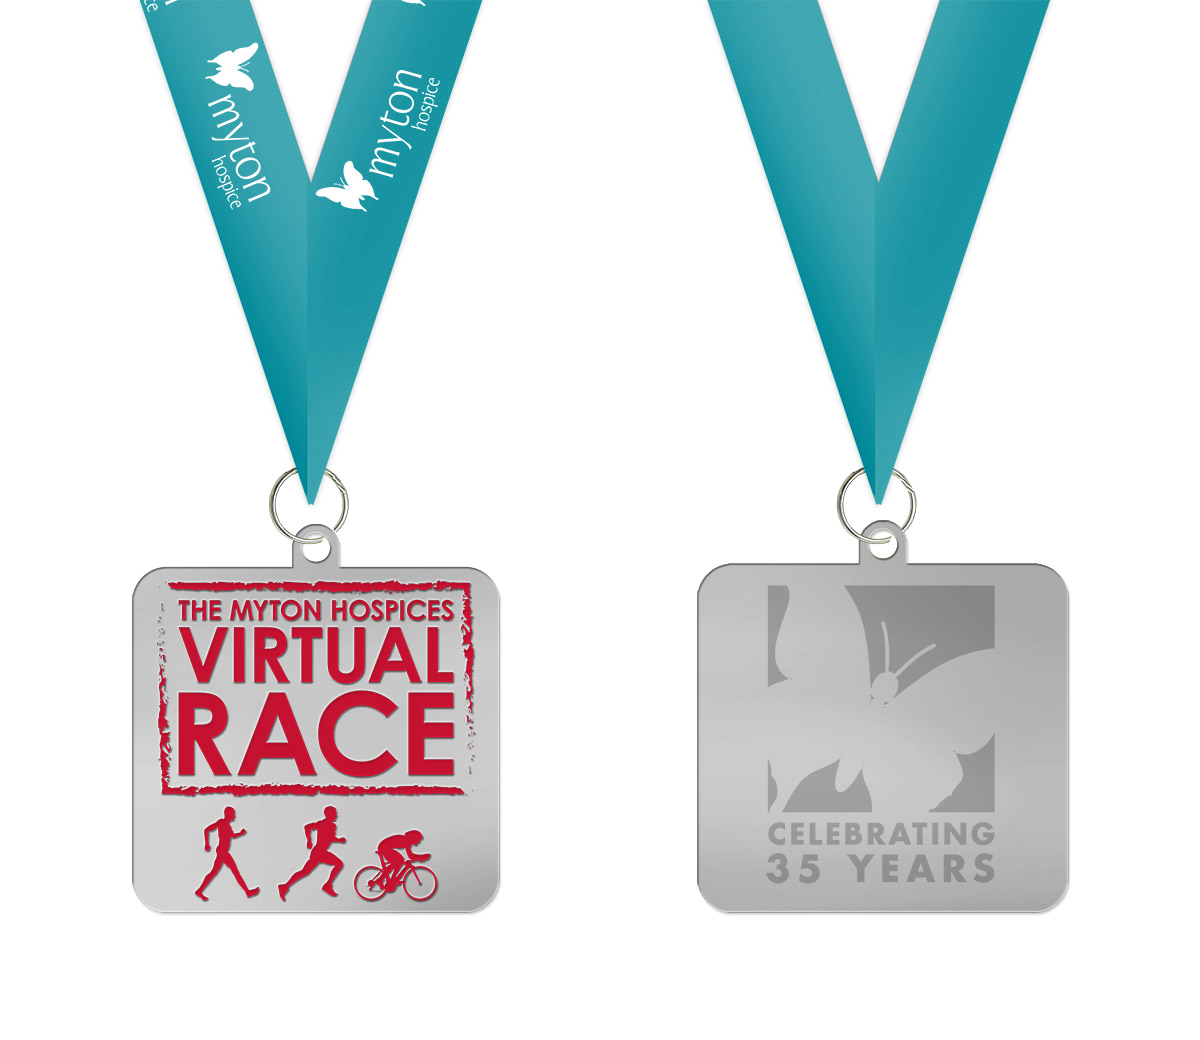 The Myton Hospices Virtual Race Medal